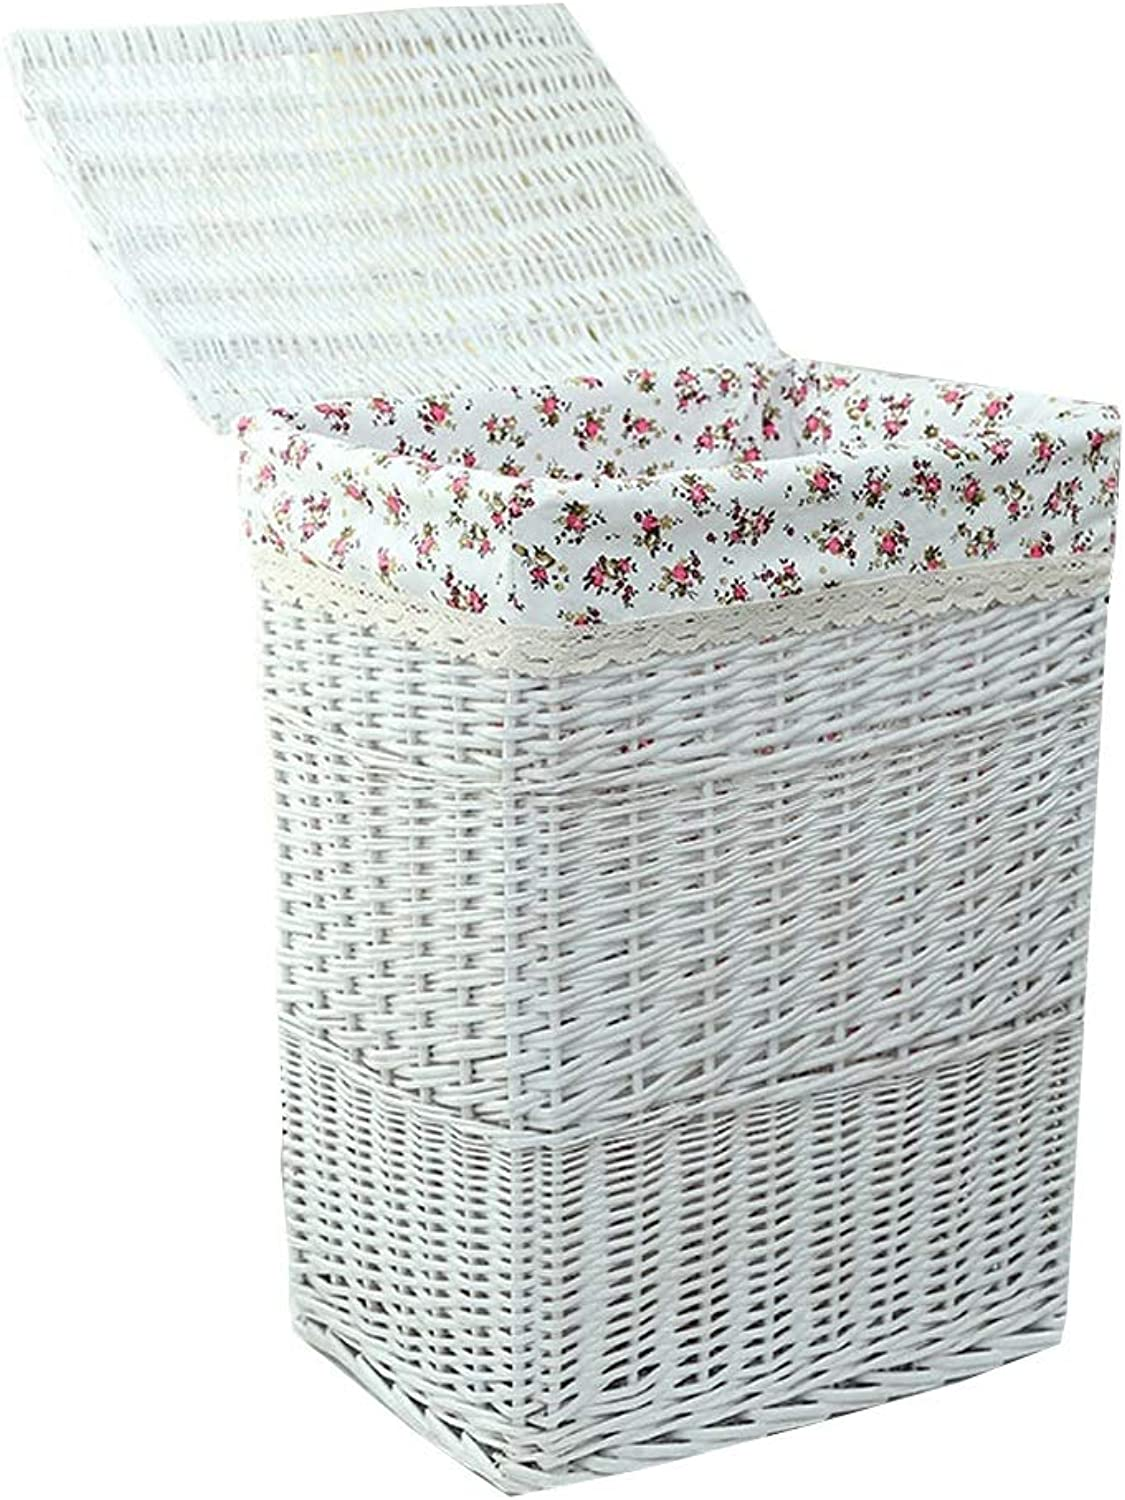 Willow Woven Large Storage Basket Laundry Hampers Box Home Dirty Clothes Toys   Sundries Storage Basketful with Lid (White)